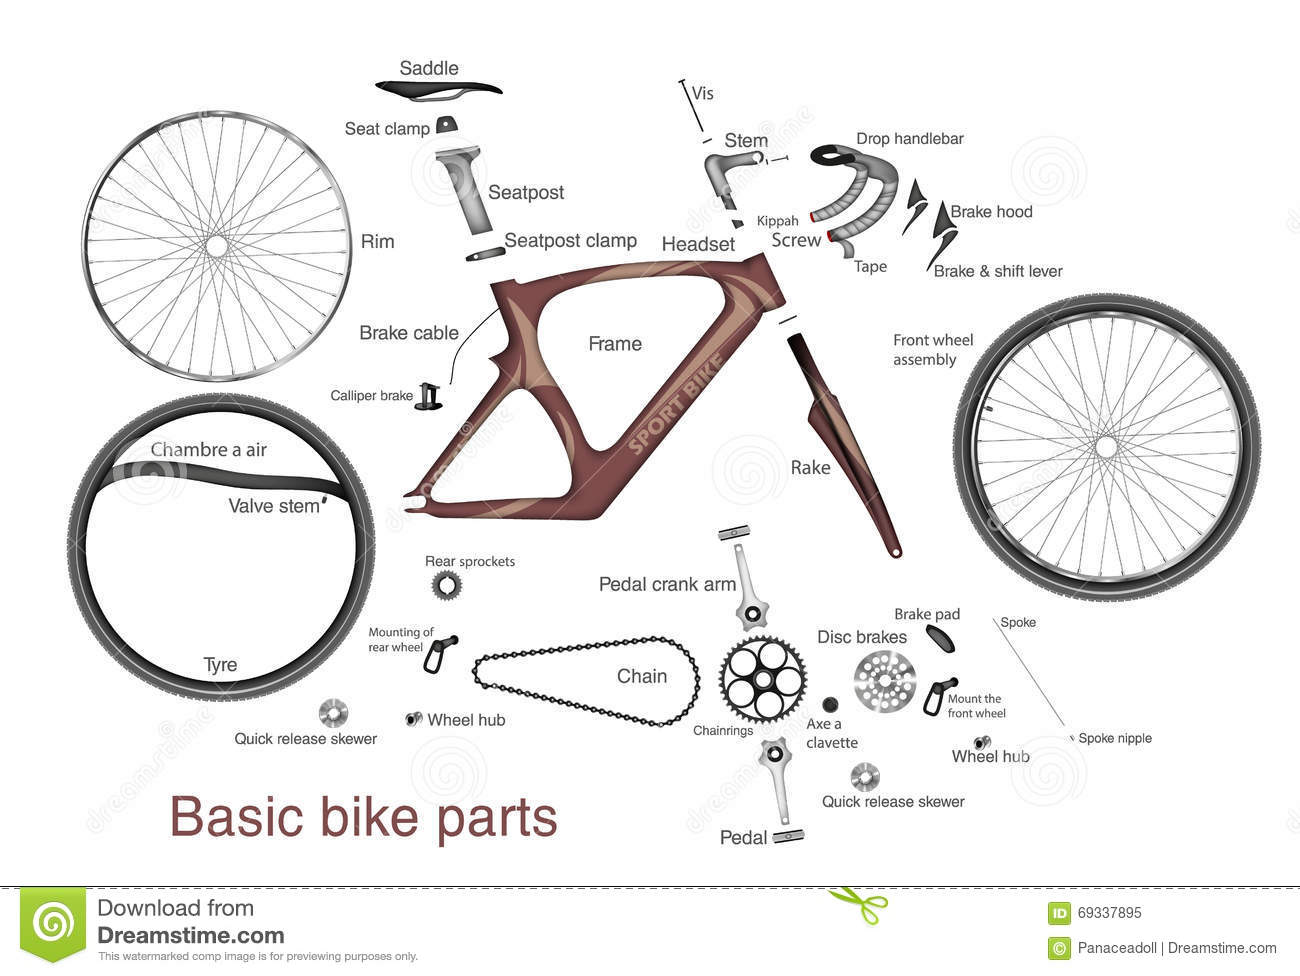 Bike Part Names Diagram Great Installation Of Wiring Disc Brake Assembly And Parts List For Sears Bicycleparts Infographic Main With The Stock Vector Rh Dreamstime Com Exploded Bicycle